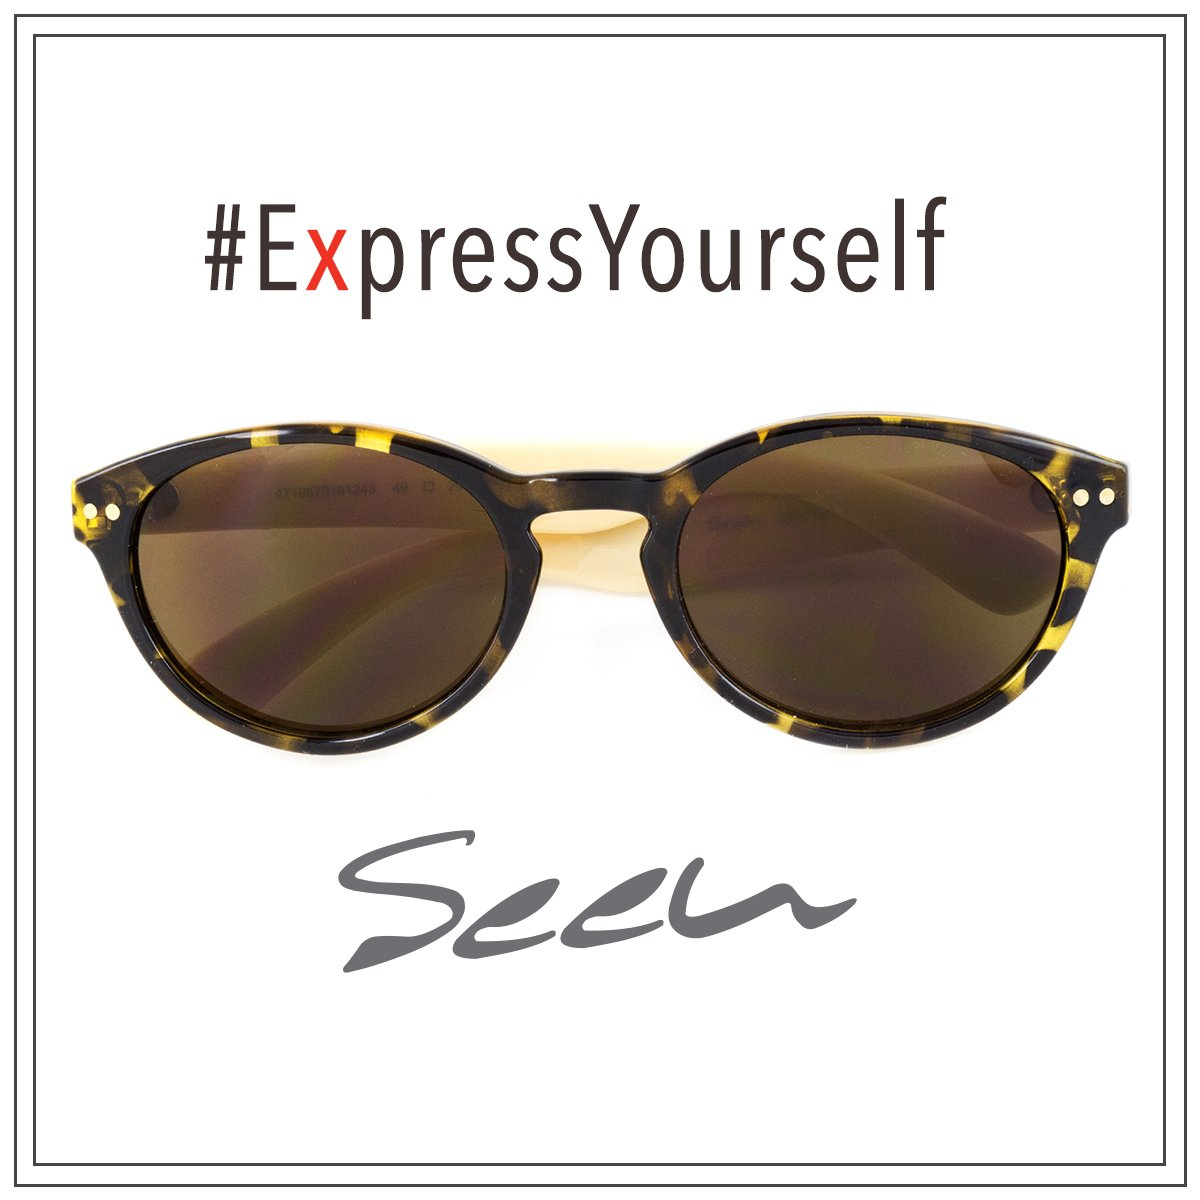 Follow @VisionExpress & RT for the chance to #Win these Children's sunglasses! How do you #ExpressYourself? https://t.co/mgR8Ex6Aoc